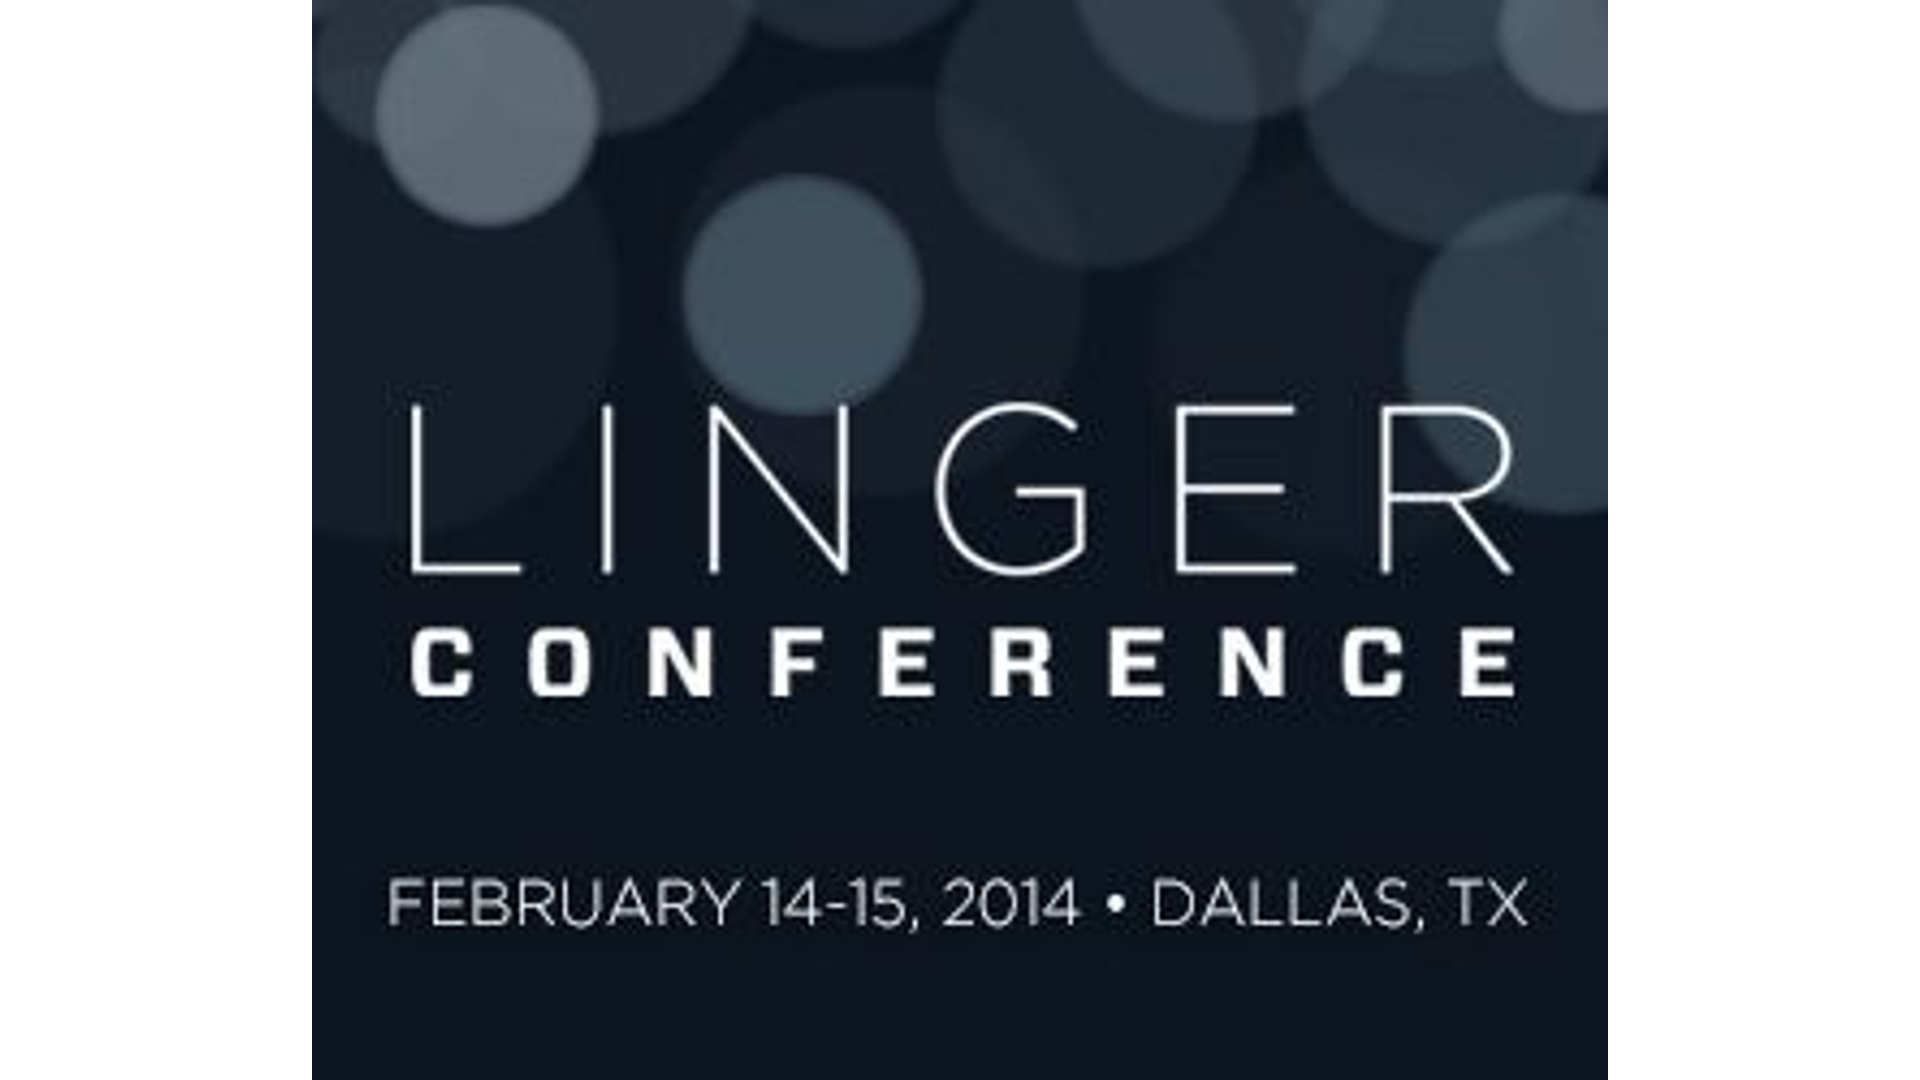 Join Todd Wagner and Friends At The 2014 Linger Conference! Hero Image